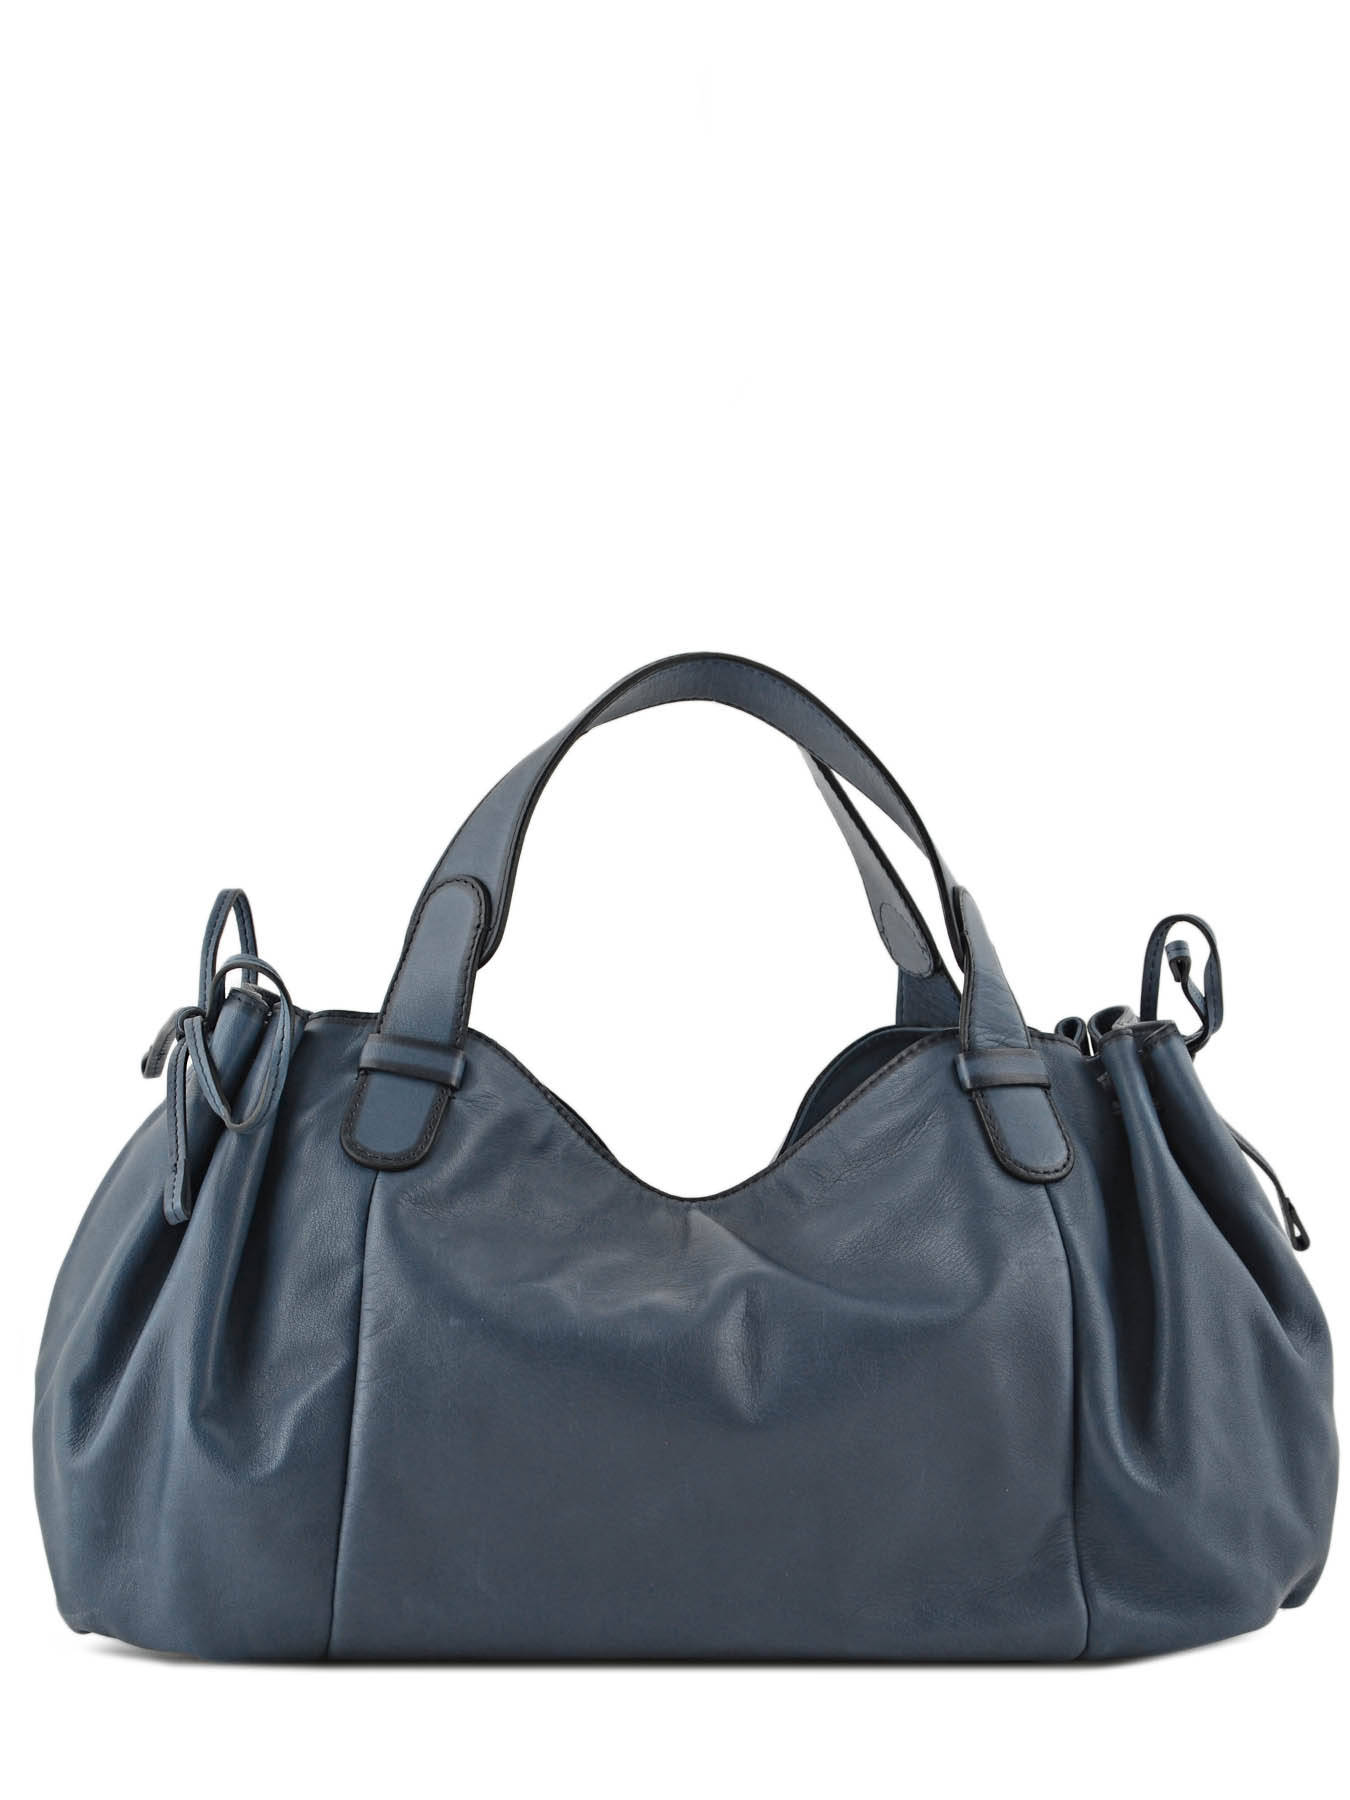 Sac Shopping Gd Cuir Gerard darel Bleu gd DES07410